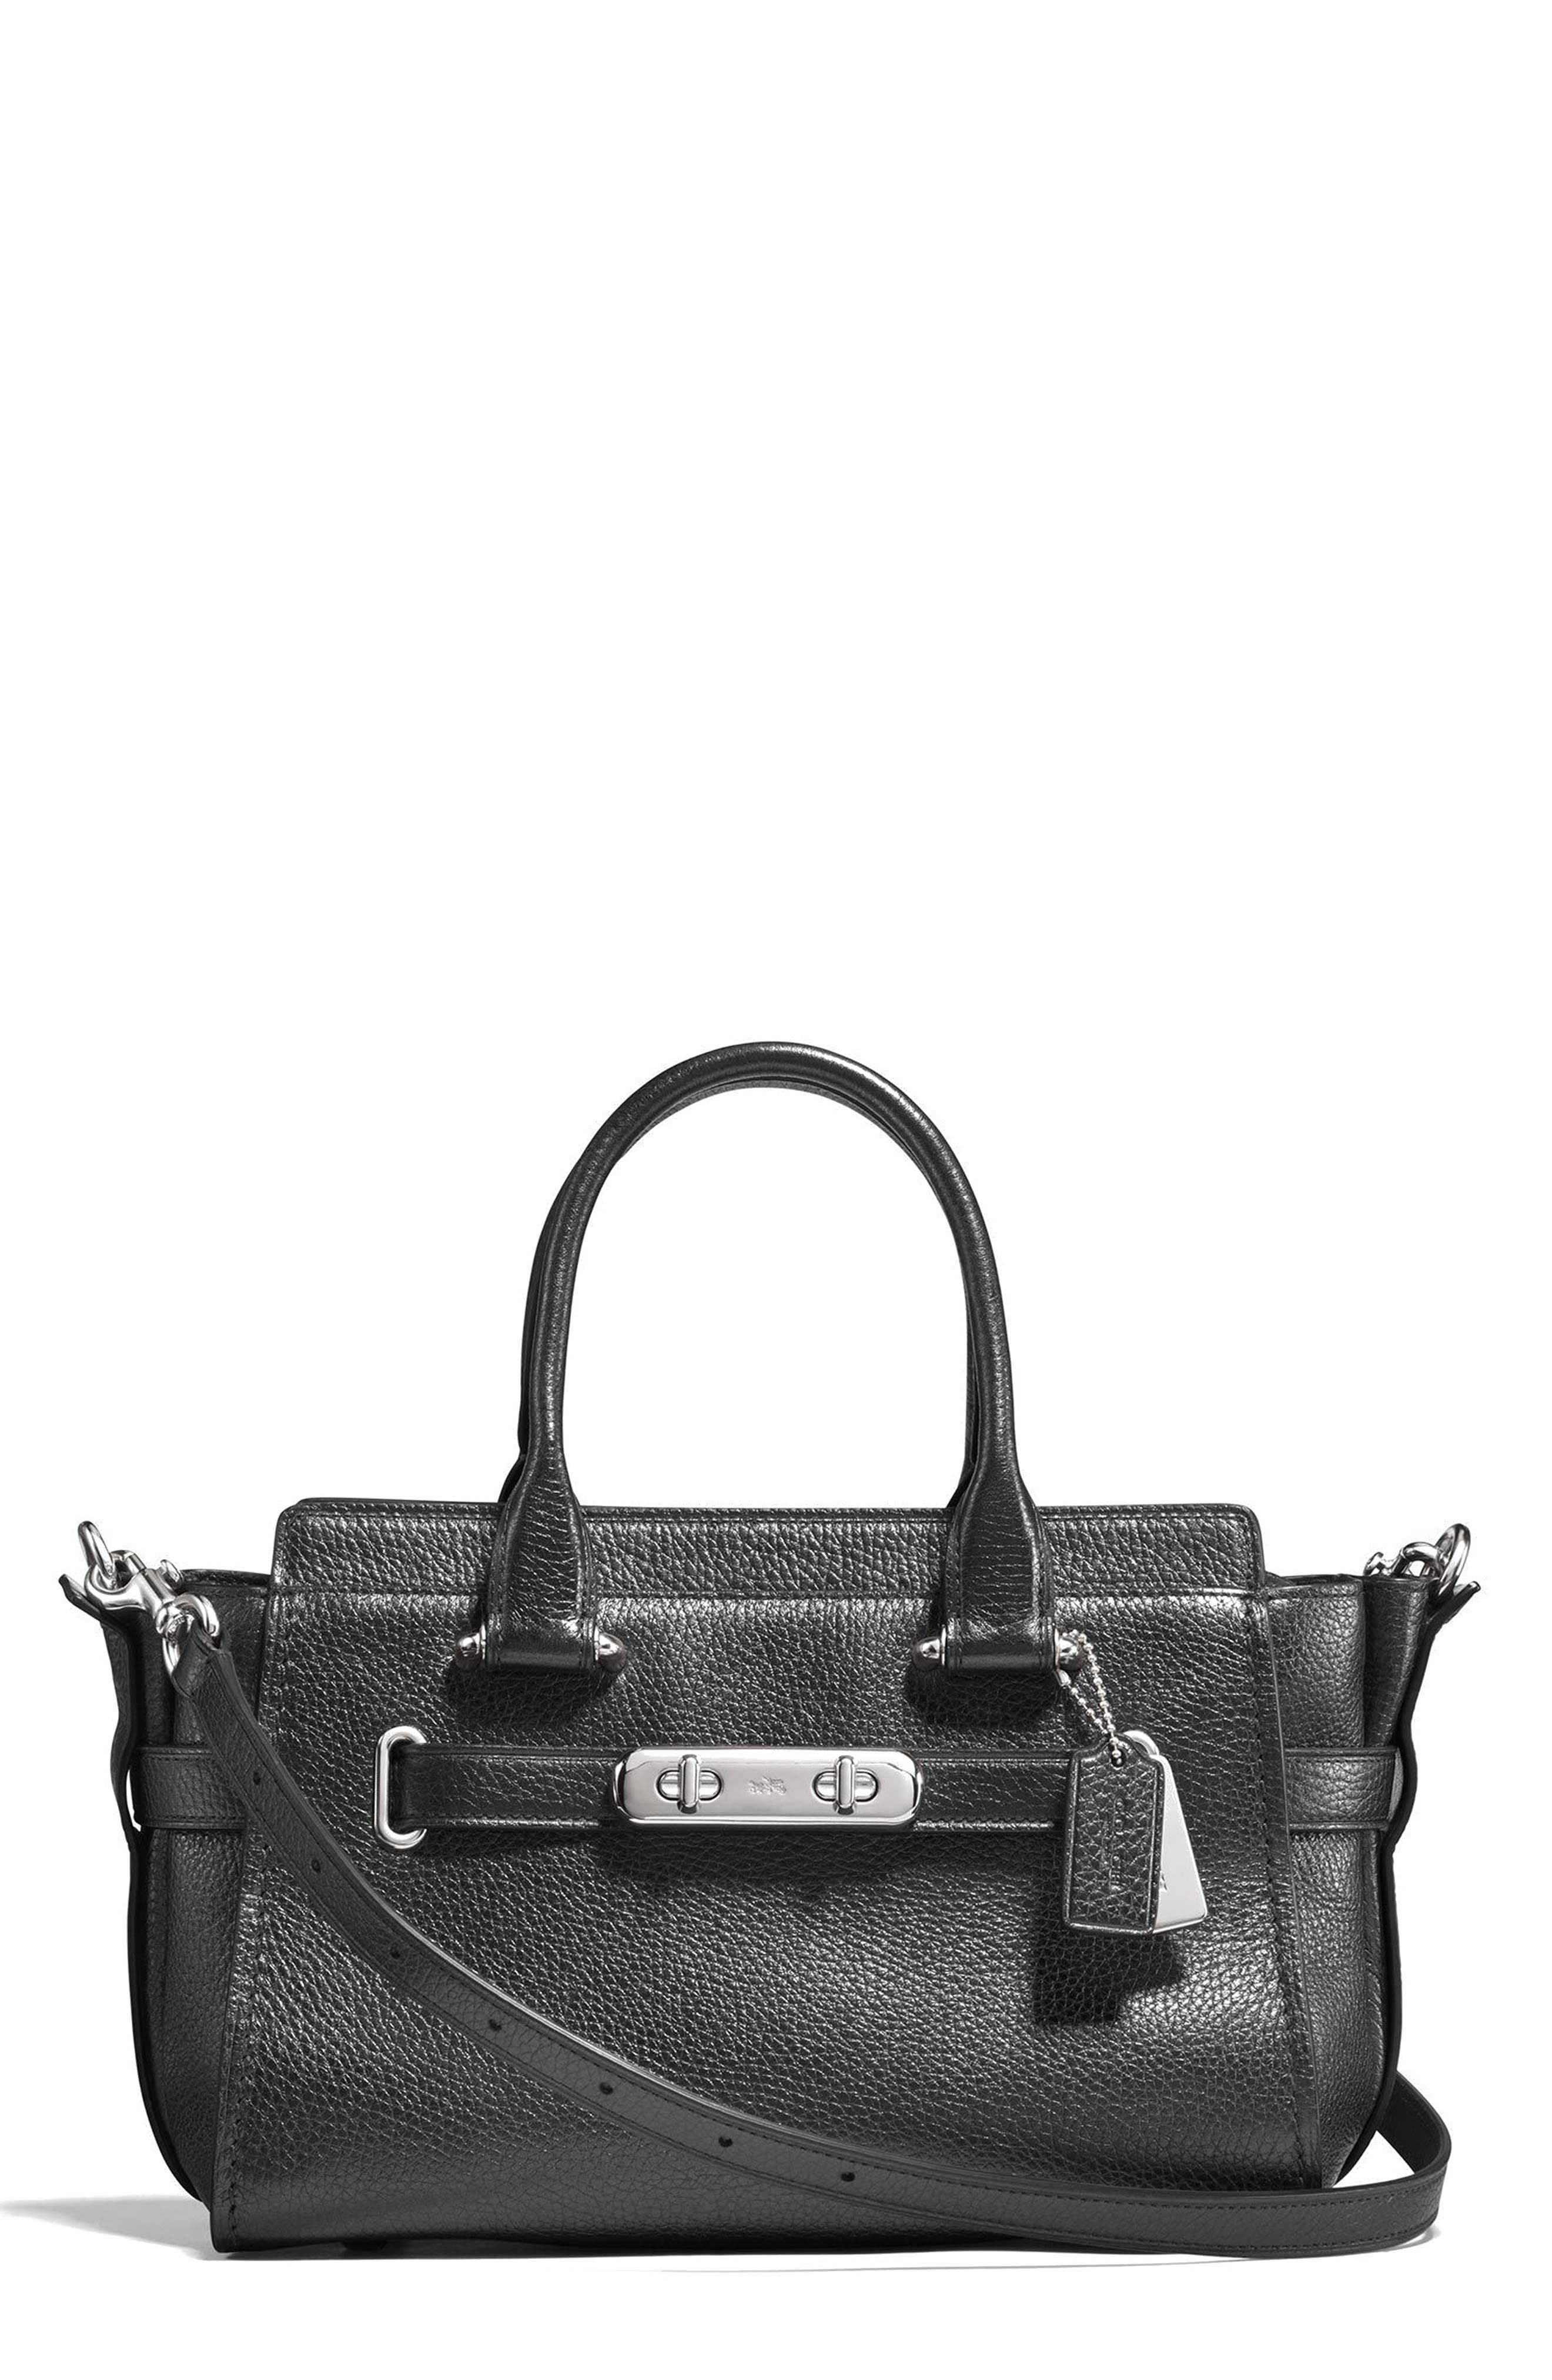 COACH Swagger 27 Metallic Pebbled Leather Satchel